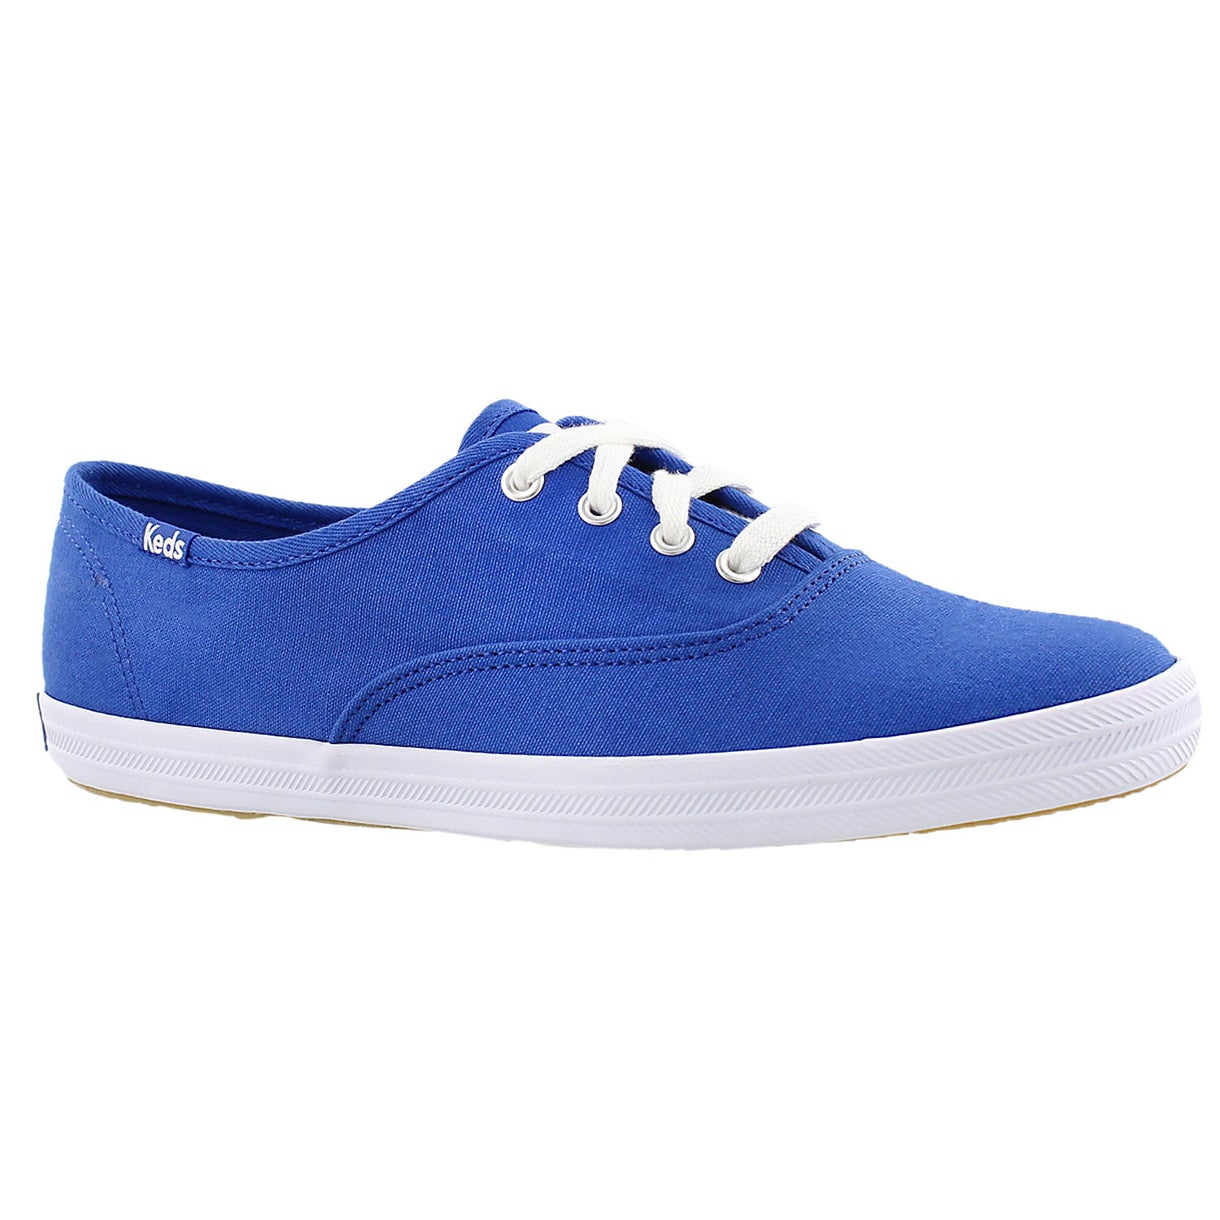 Lds Champion blue canvas sneaker